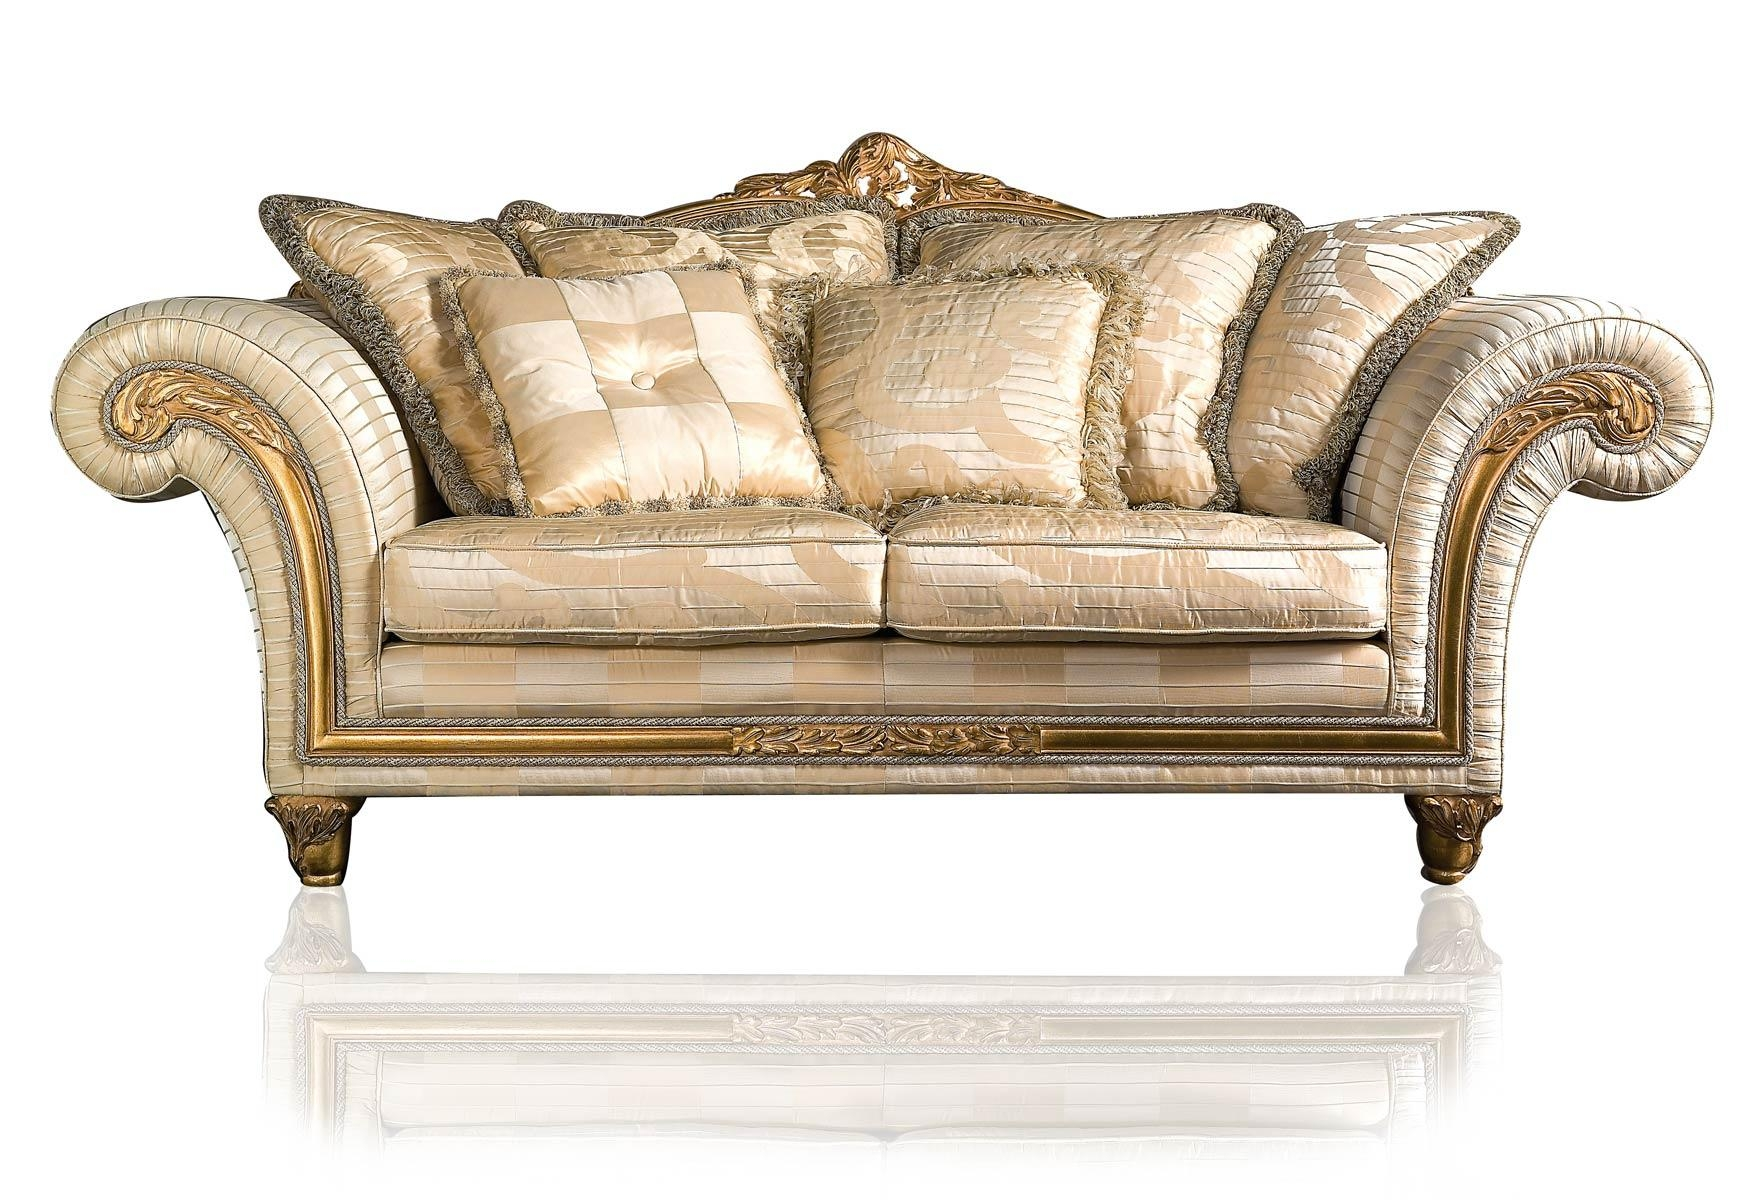 Fancy Sofas And Chairs On Home Design Ideas With Sofas And Chairs For Fancy Sofas (Image 10 of 20)